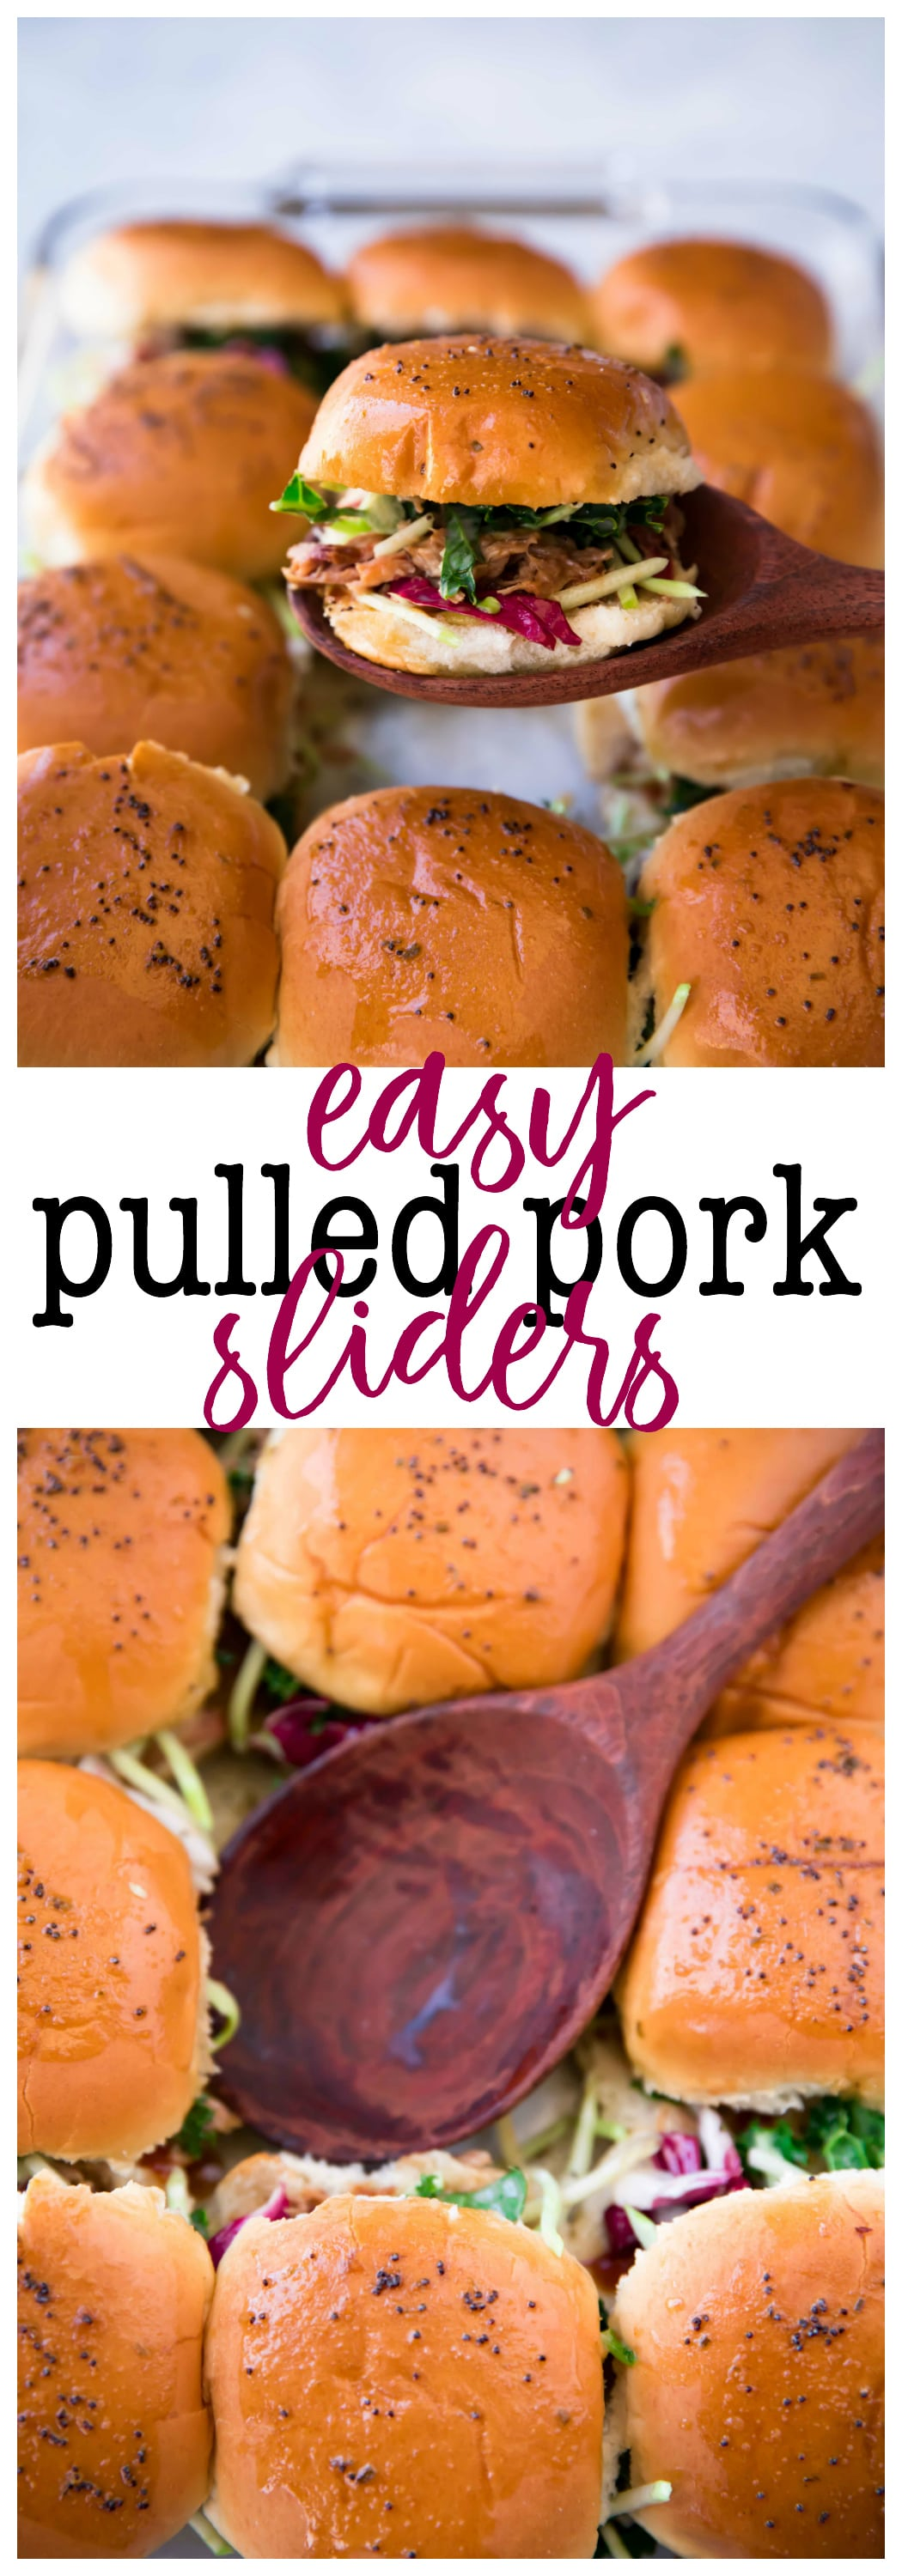 These Easy Pulled Pork Sliders are super quick to whip up, full of flavor, andabsolutely drool worthy. Top them with your favorite coleslaw for an extra special touch.